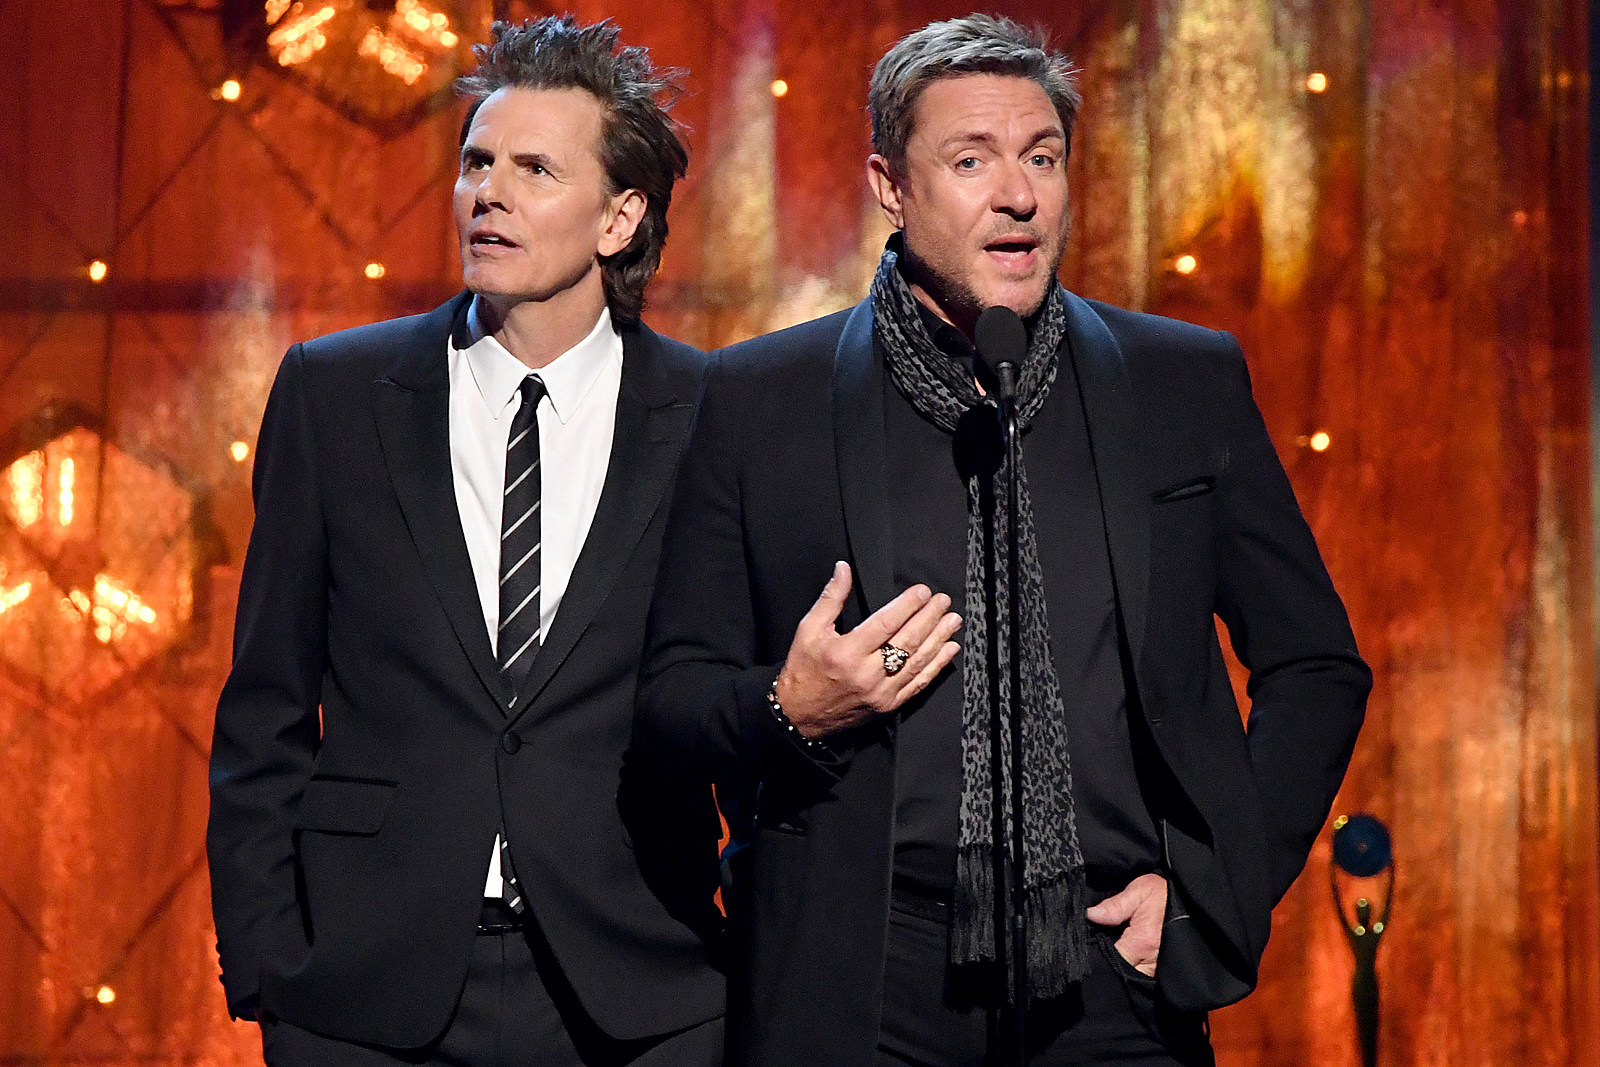 Duran Duran Induct Roxy Music Into Rock and Roll Hall of Fame